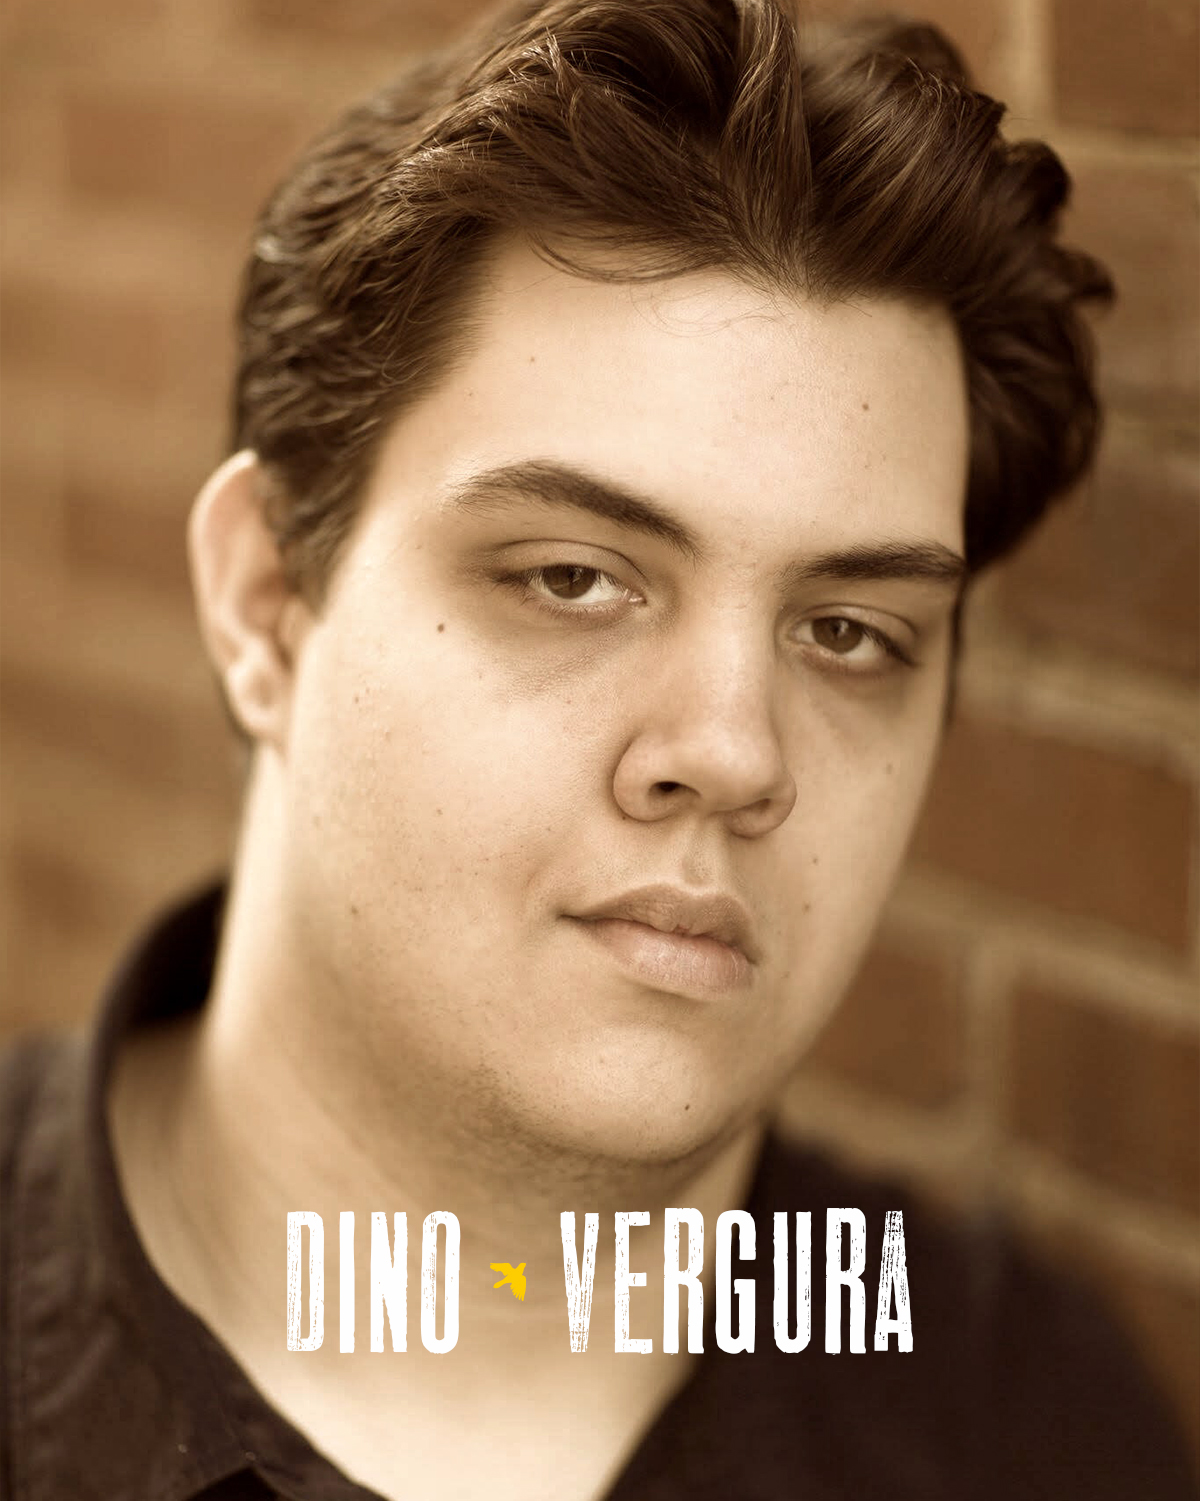 DINO VERGURA  (Ensemble) is very excited to be working on his first staged production with West Virginia Public Theatre, after being a part of the staged reading of  Storming Heaven: The Musical  in January. He is currently a senior Theatre Education Major at Fairmont State University, where he has performed as Lurch in  The Addams Family Musical , Jack Stone in  Reefer Madness , Shamreav in Anton Chekhov's  The Seagull , and Officer Lockstock in  Urinetown , which was selected to perform at the Kennedy Center American College Theatre Festival (KCACTF) Region 2 in January 2018. Enjoy the show!